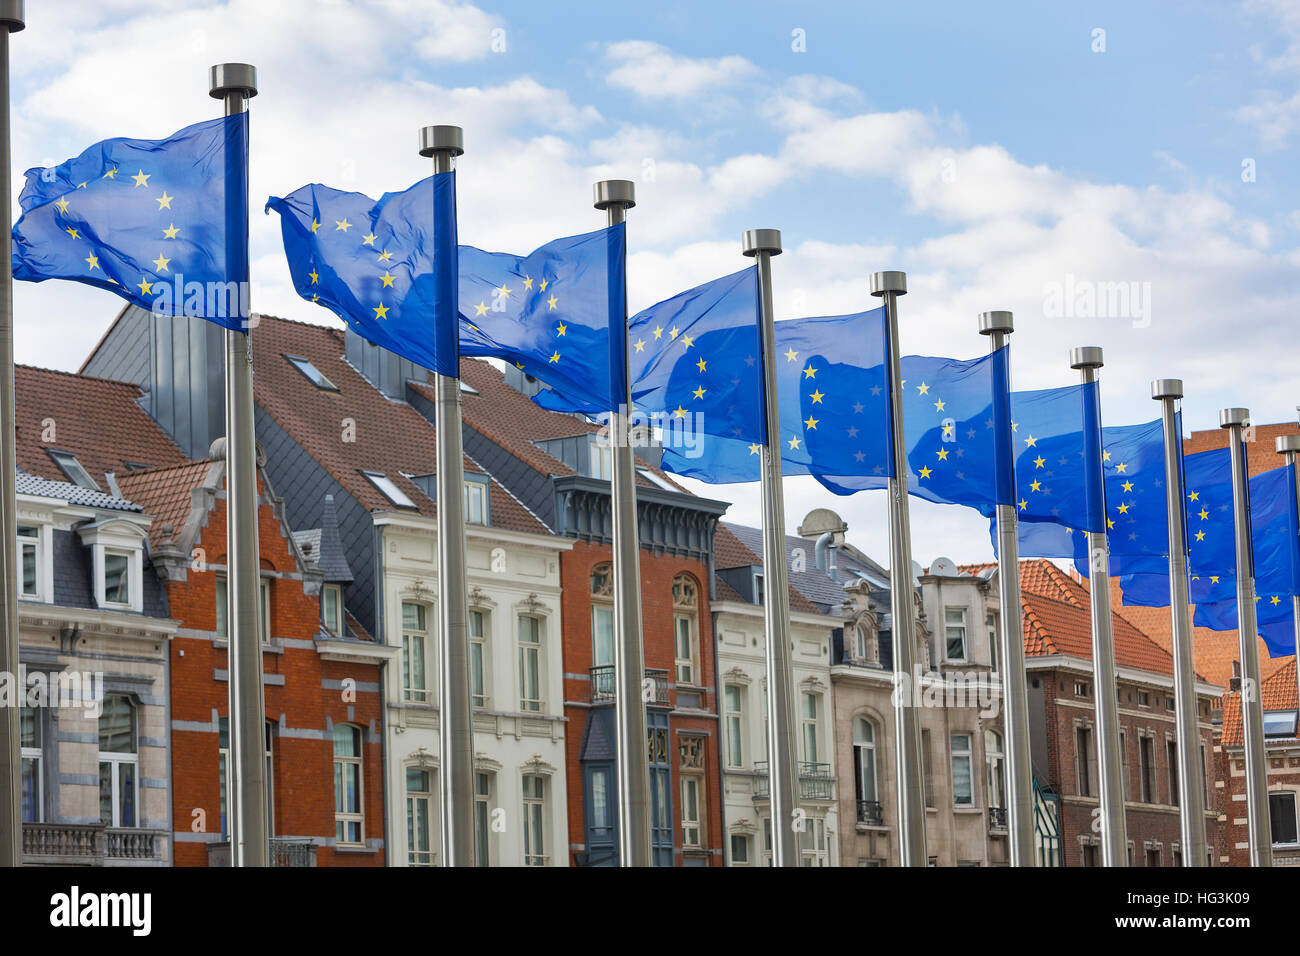 A line of EU flags flying on metal poles in front of the Berlaymont Building in Brussels with traditional houses - Stock Image